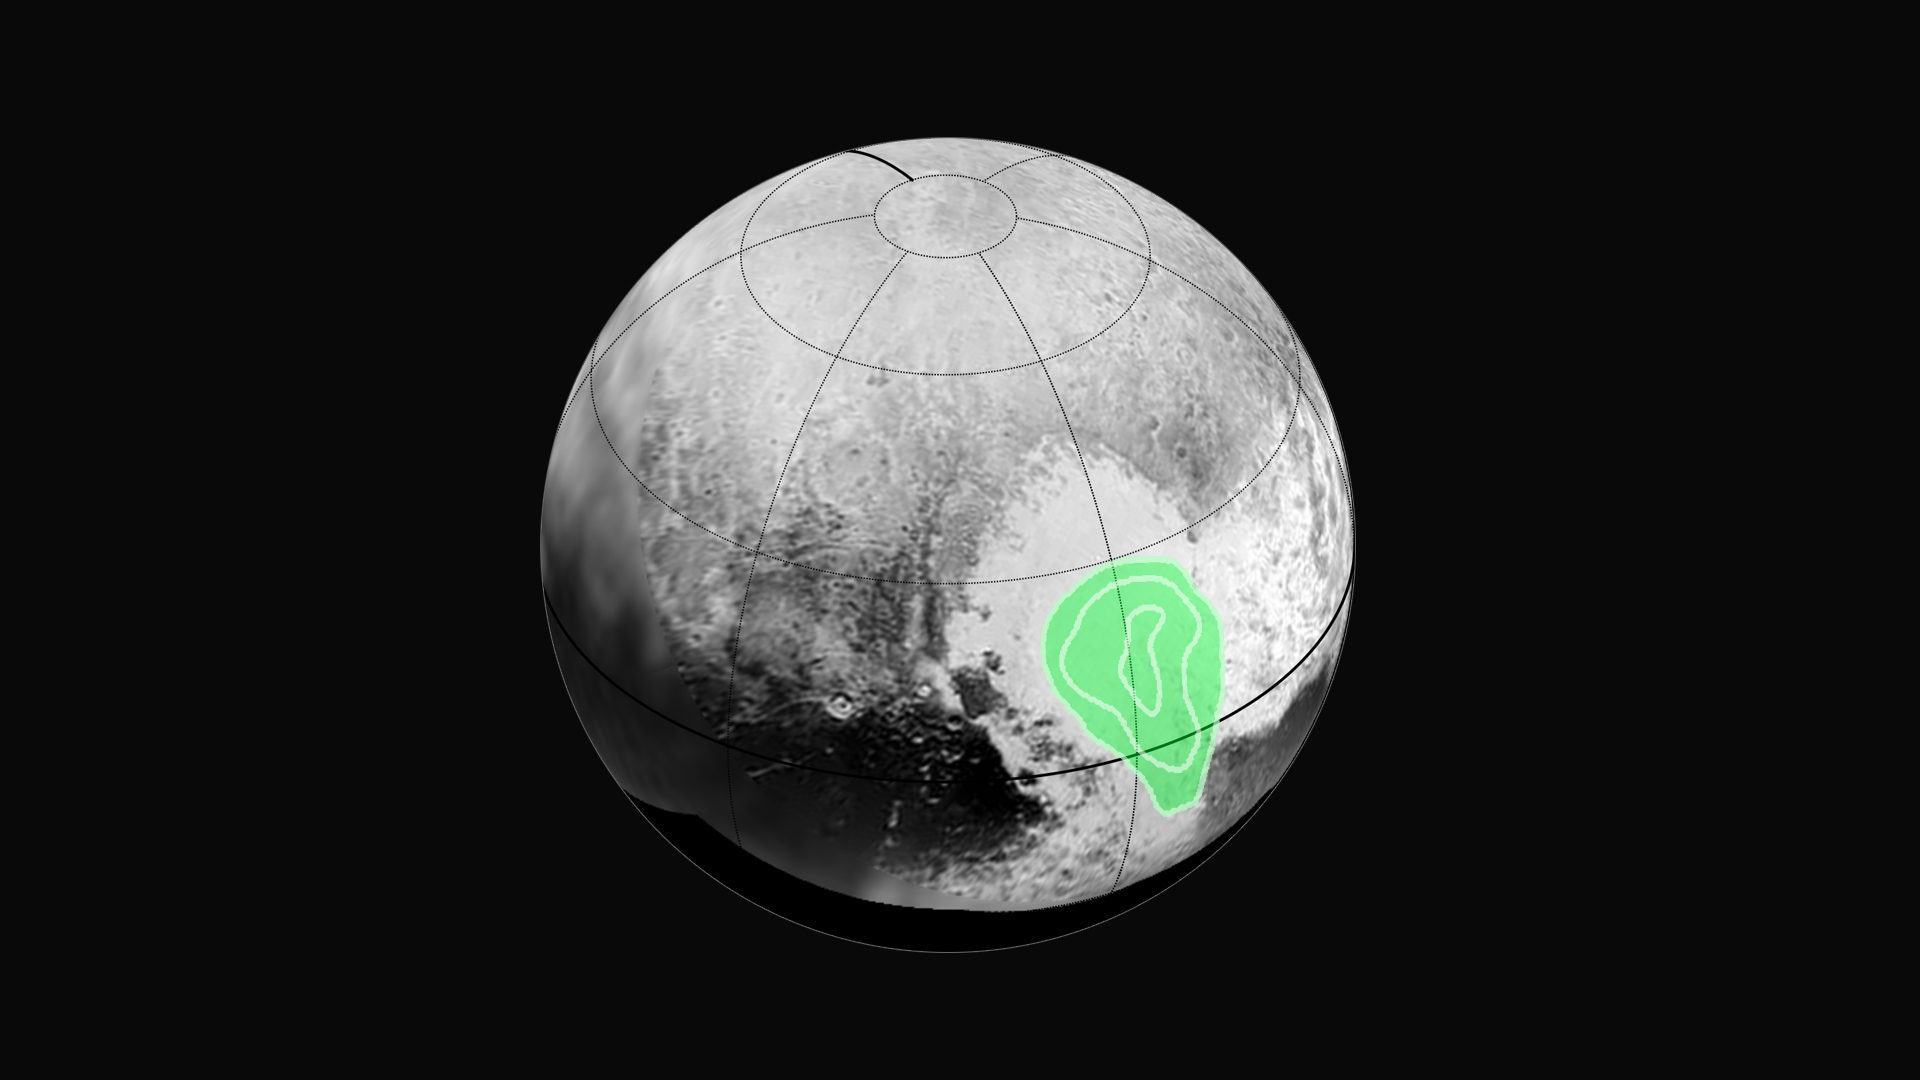 The Ralph instrument on New Horizons has discovered the signature of frozen carbon monoxide concentrated in the western half of Pluto's bright heart-shaped feature, informally named Tombaugh Regio. Credit: NASA/JHUAPL/SWRI